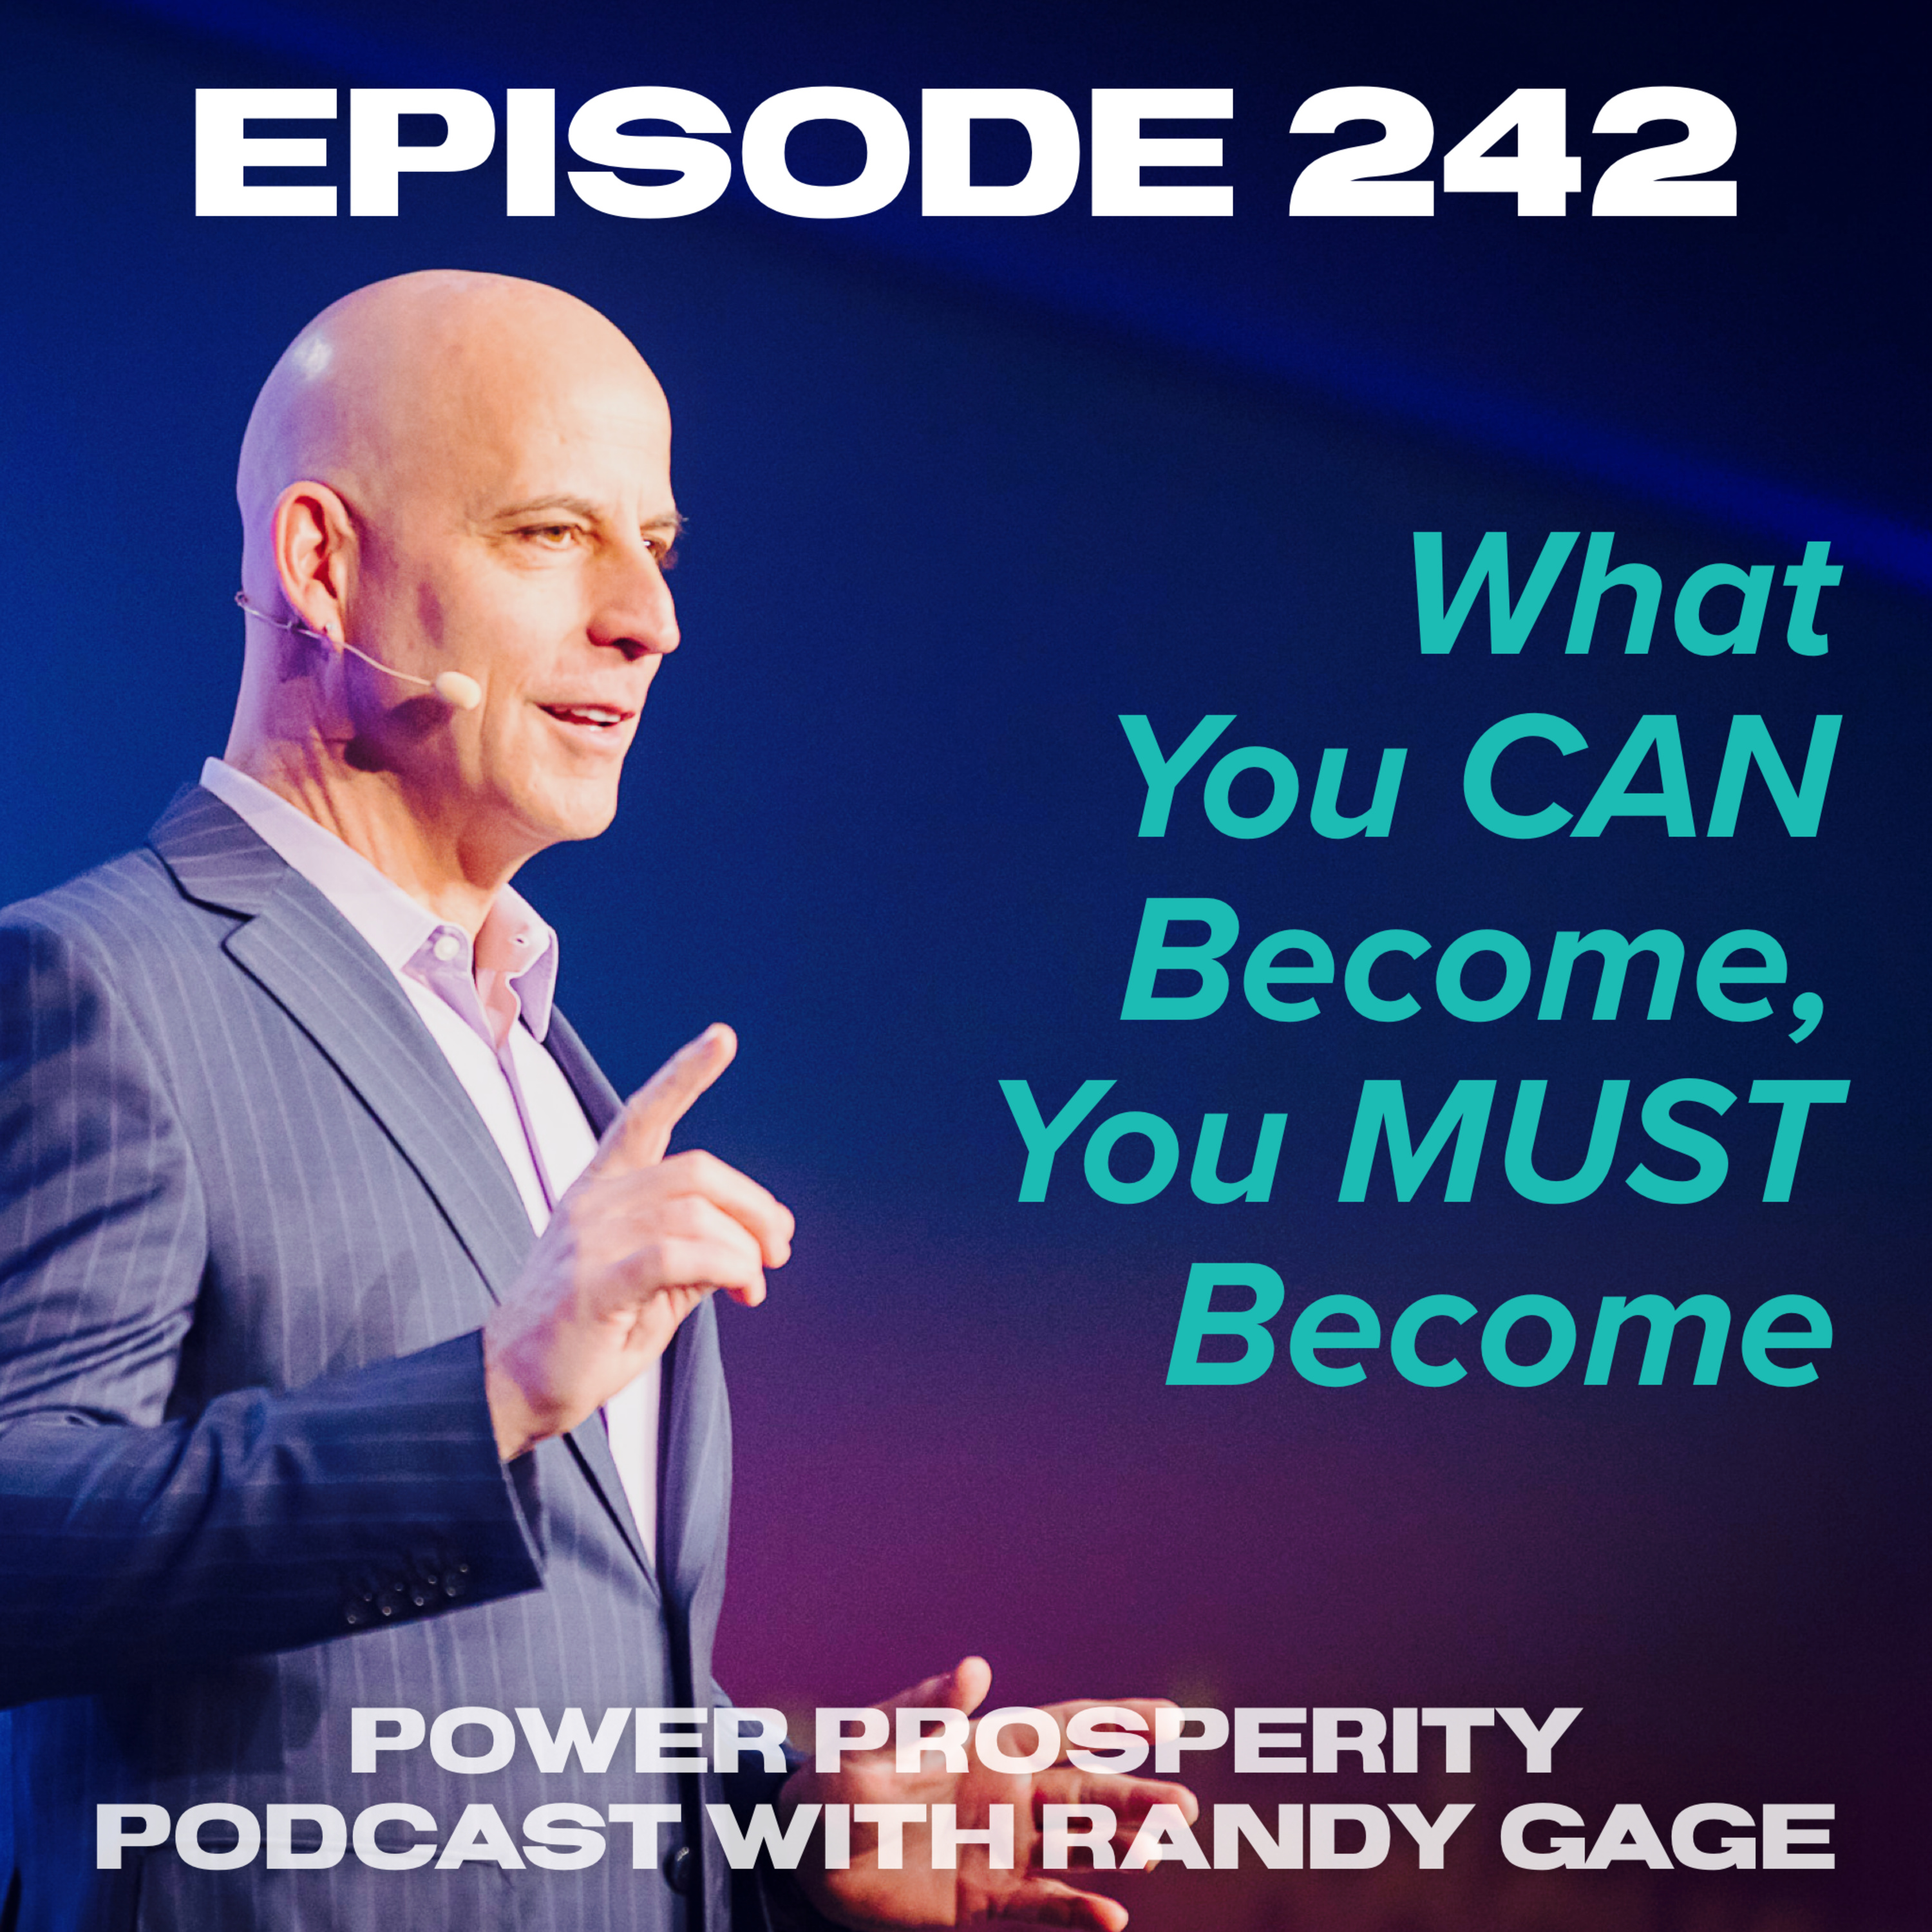 Episode 242: What You CAN Become, You MUST Become (Podcast Exclusive)